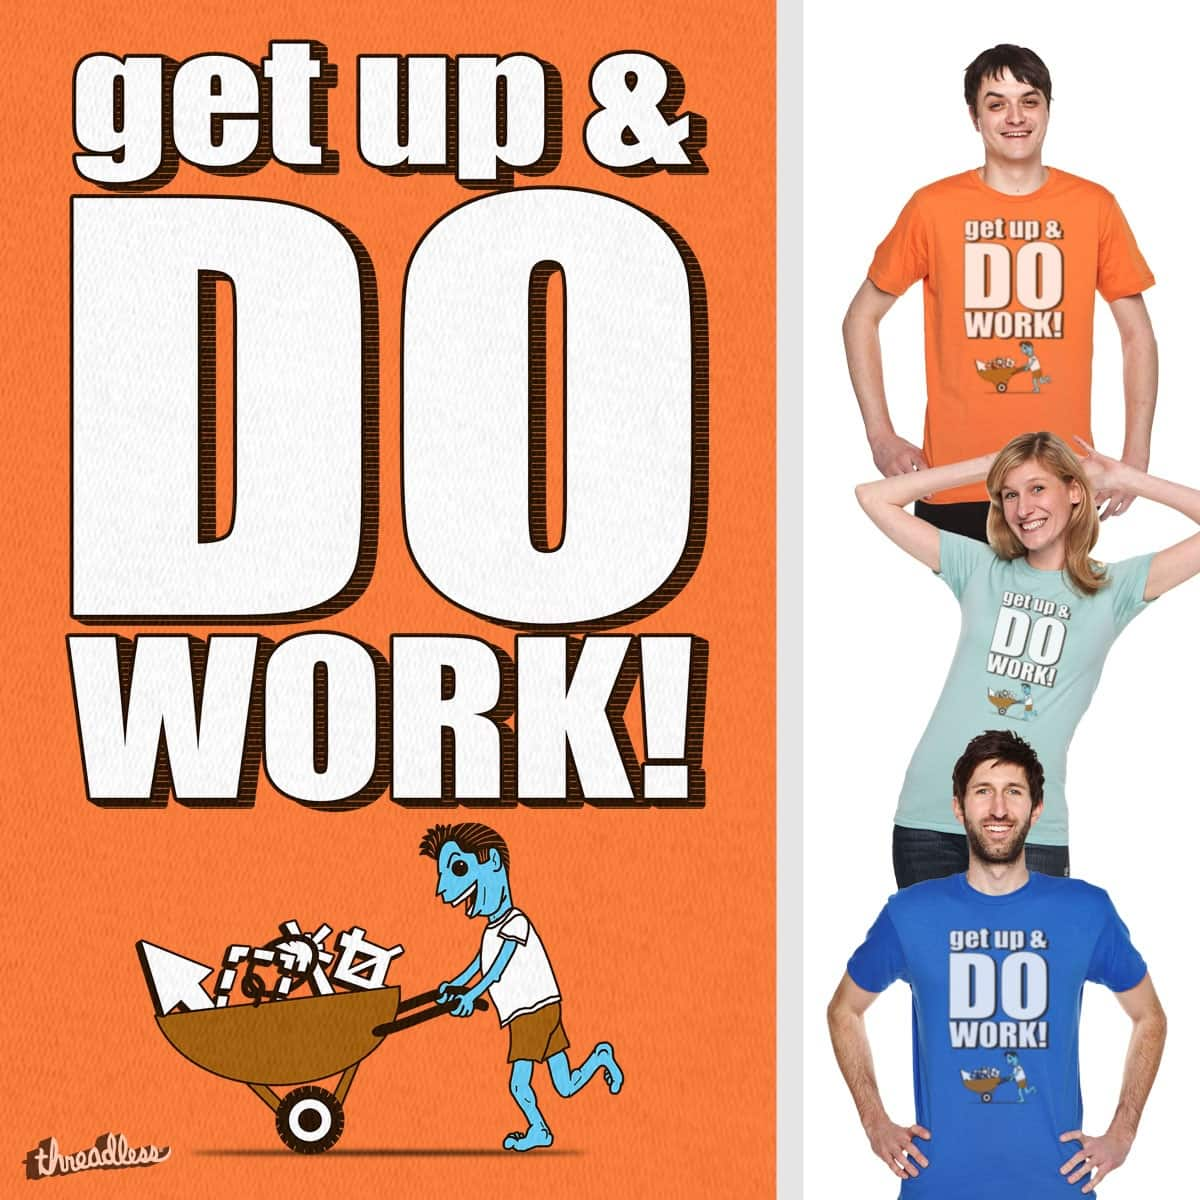 Get Up and Do Work by SteveOramA on Threadless